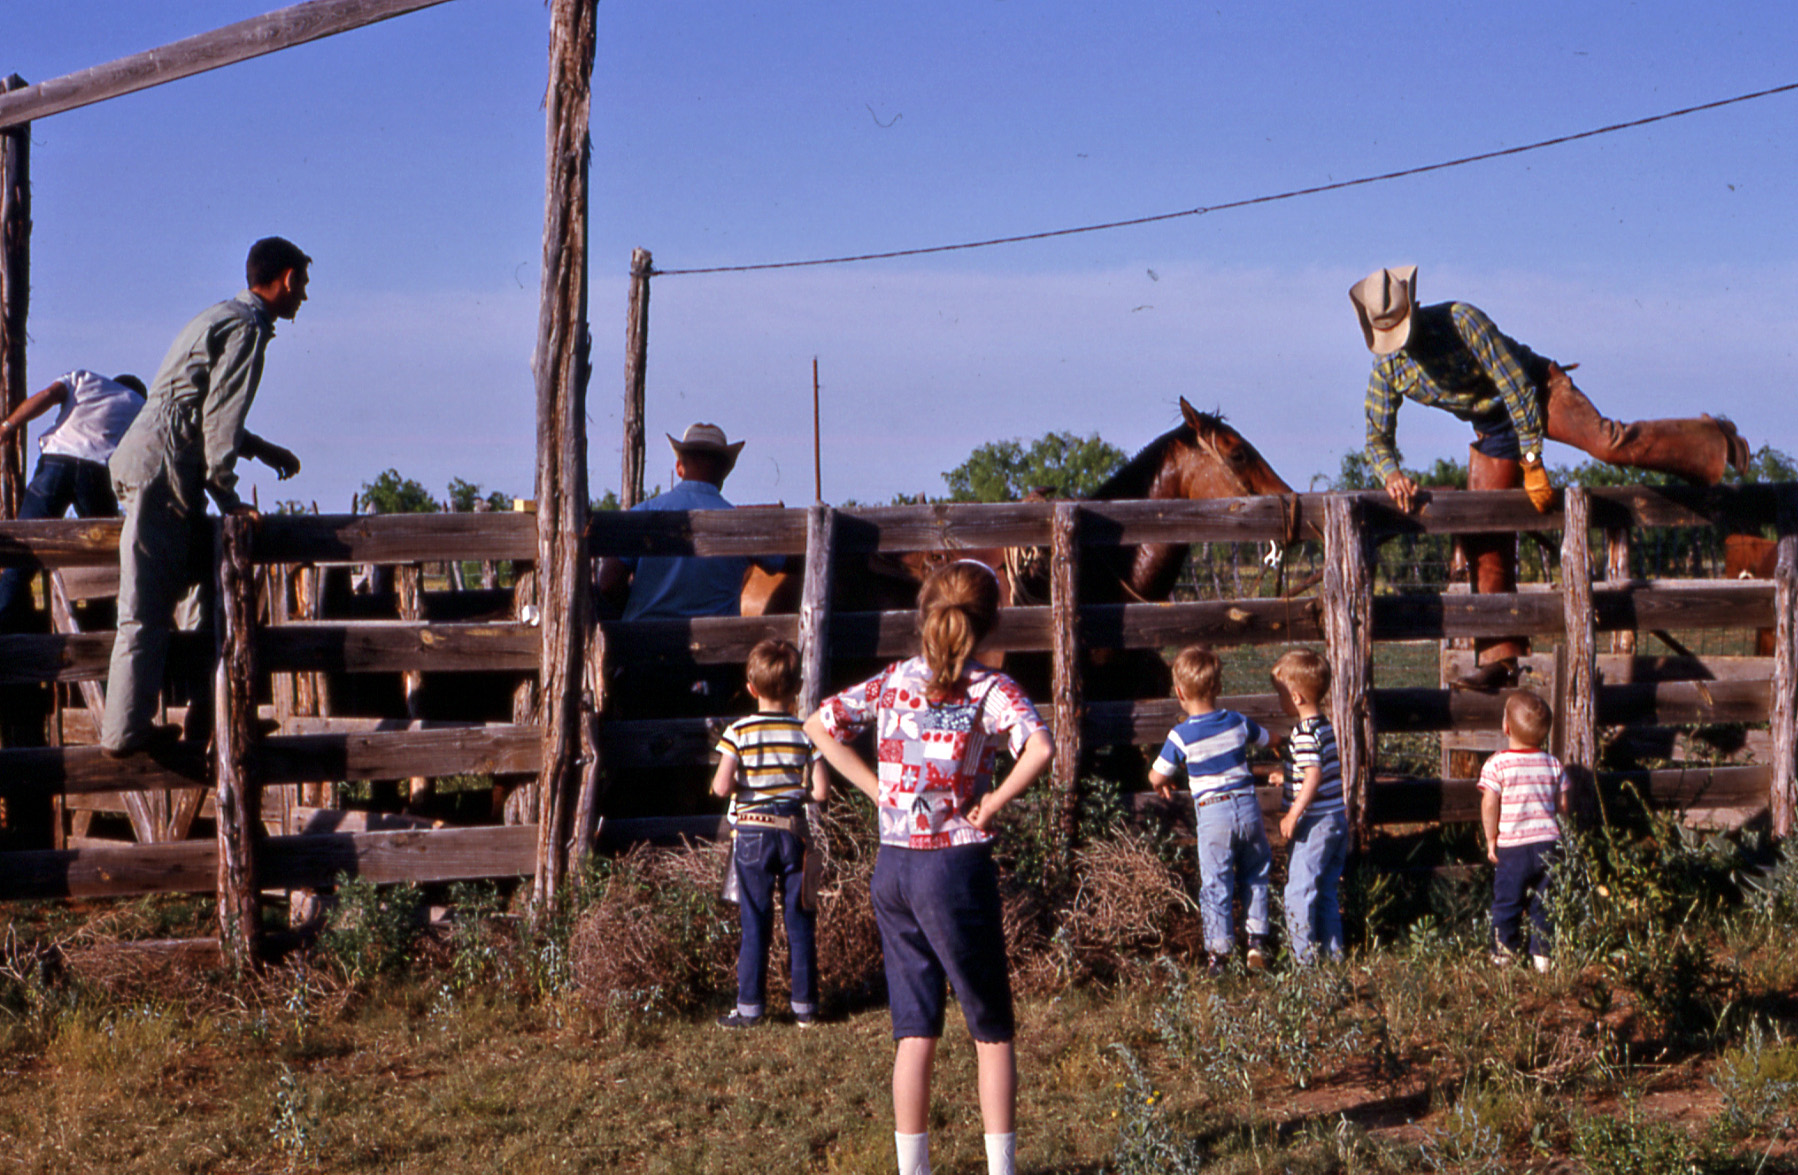 Me and my cousins watching Texas cowboys work cattle. About 1964